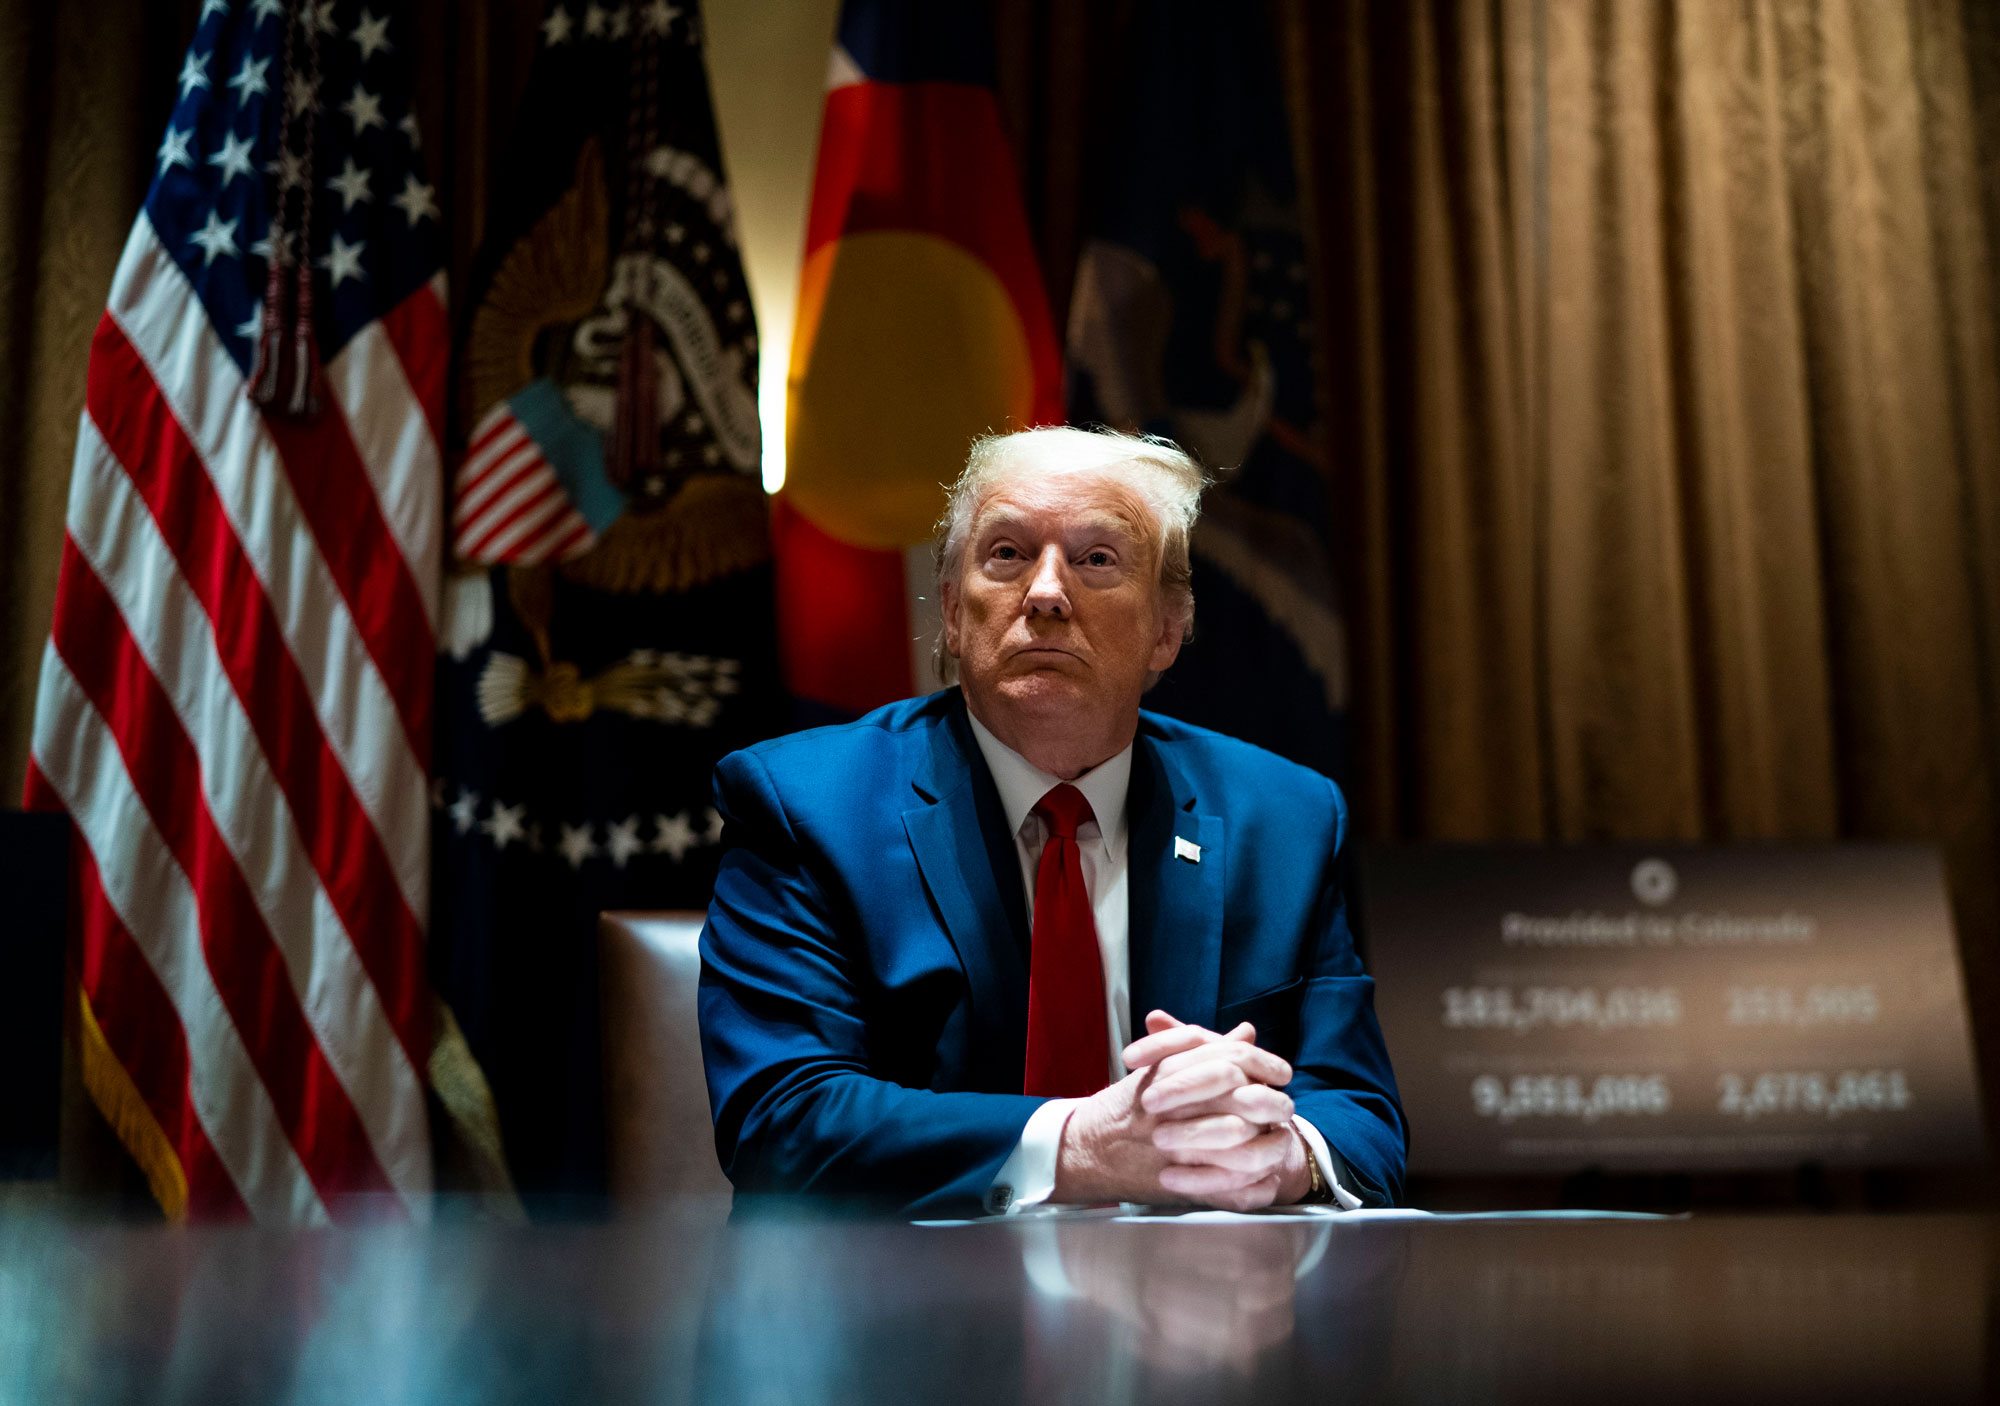 President Donald Trump looks on he as meets with Colorado Governor Jared Polis and North Dakota Governor Doug Burgum in the Cabinet Room of the White House on May 13.